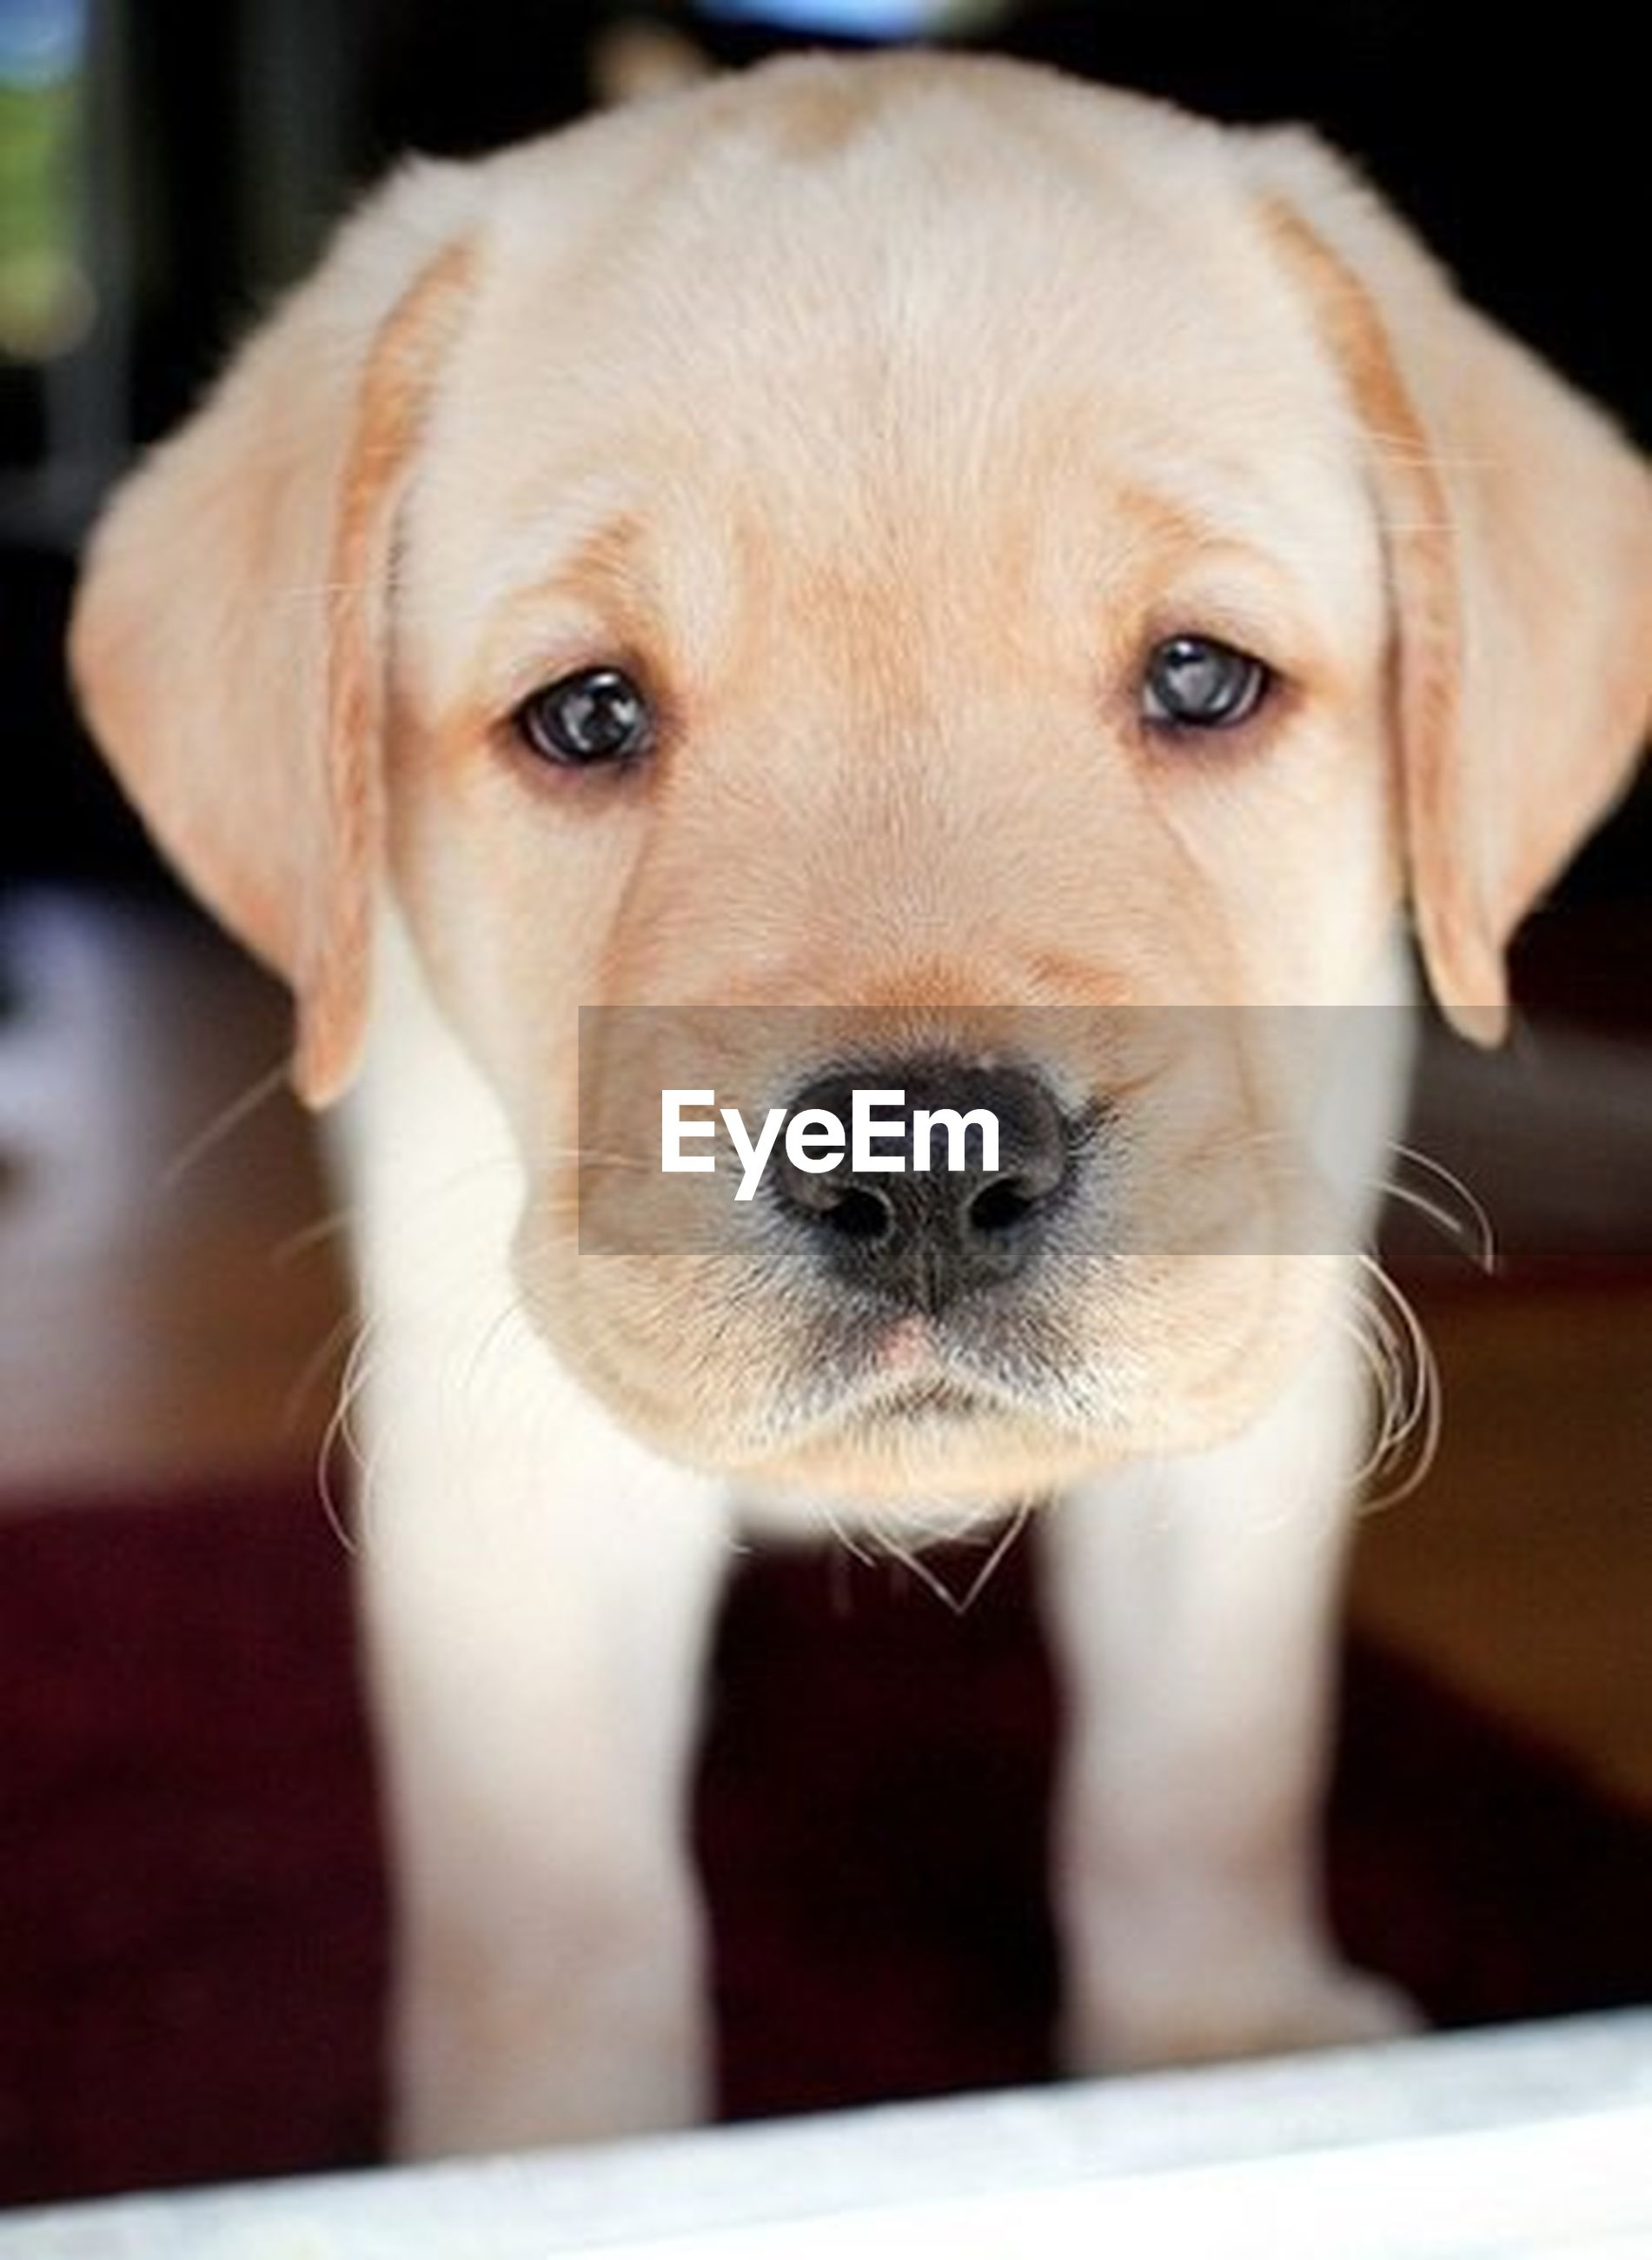 dog, pets, domestic animals, mammal, portrait, animal head, close-up, focus on foreground, snout, puppy, animal body part, cute, no people, selective focus